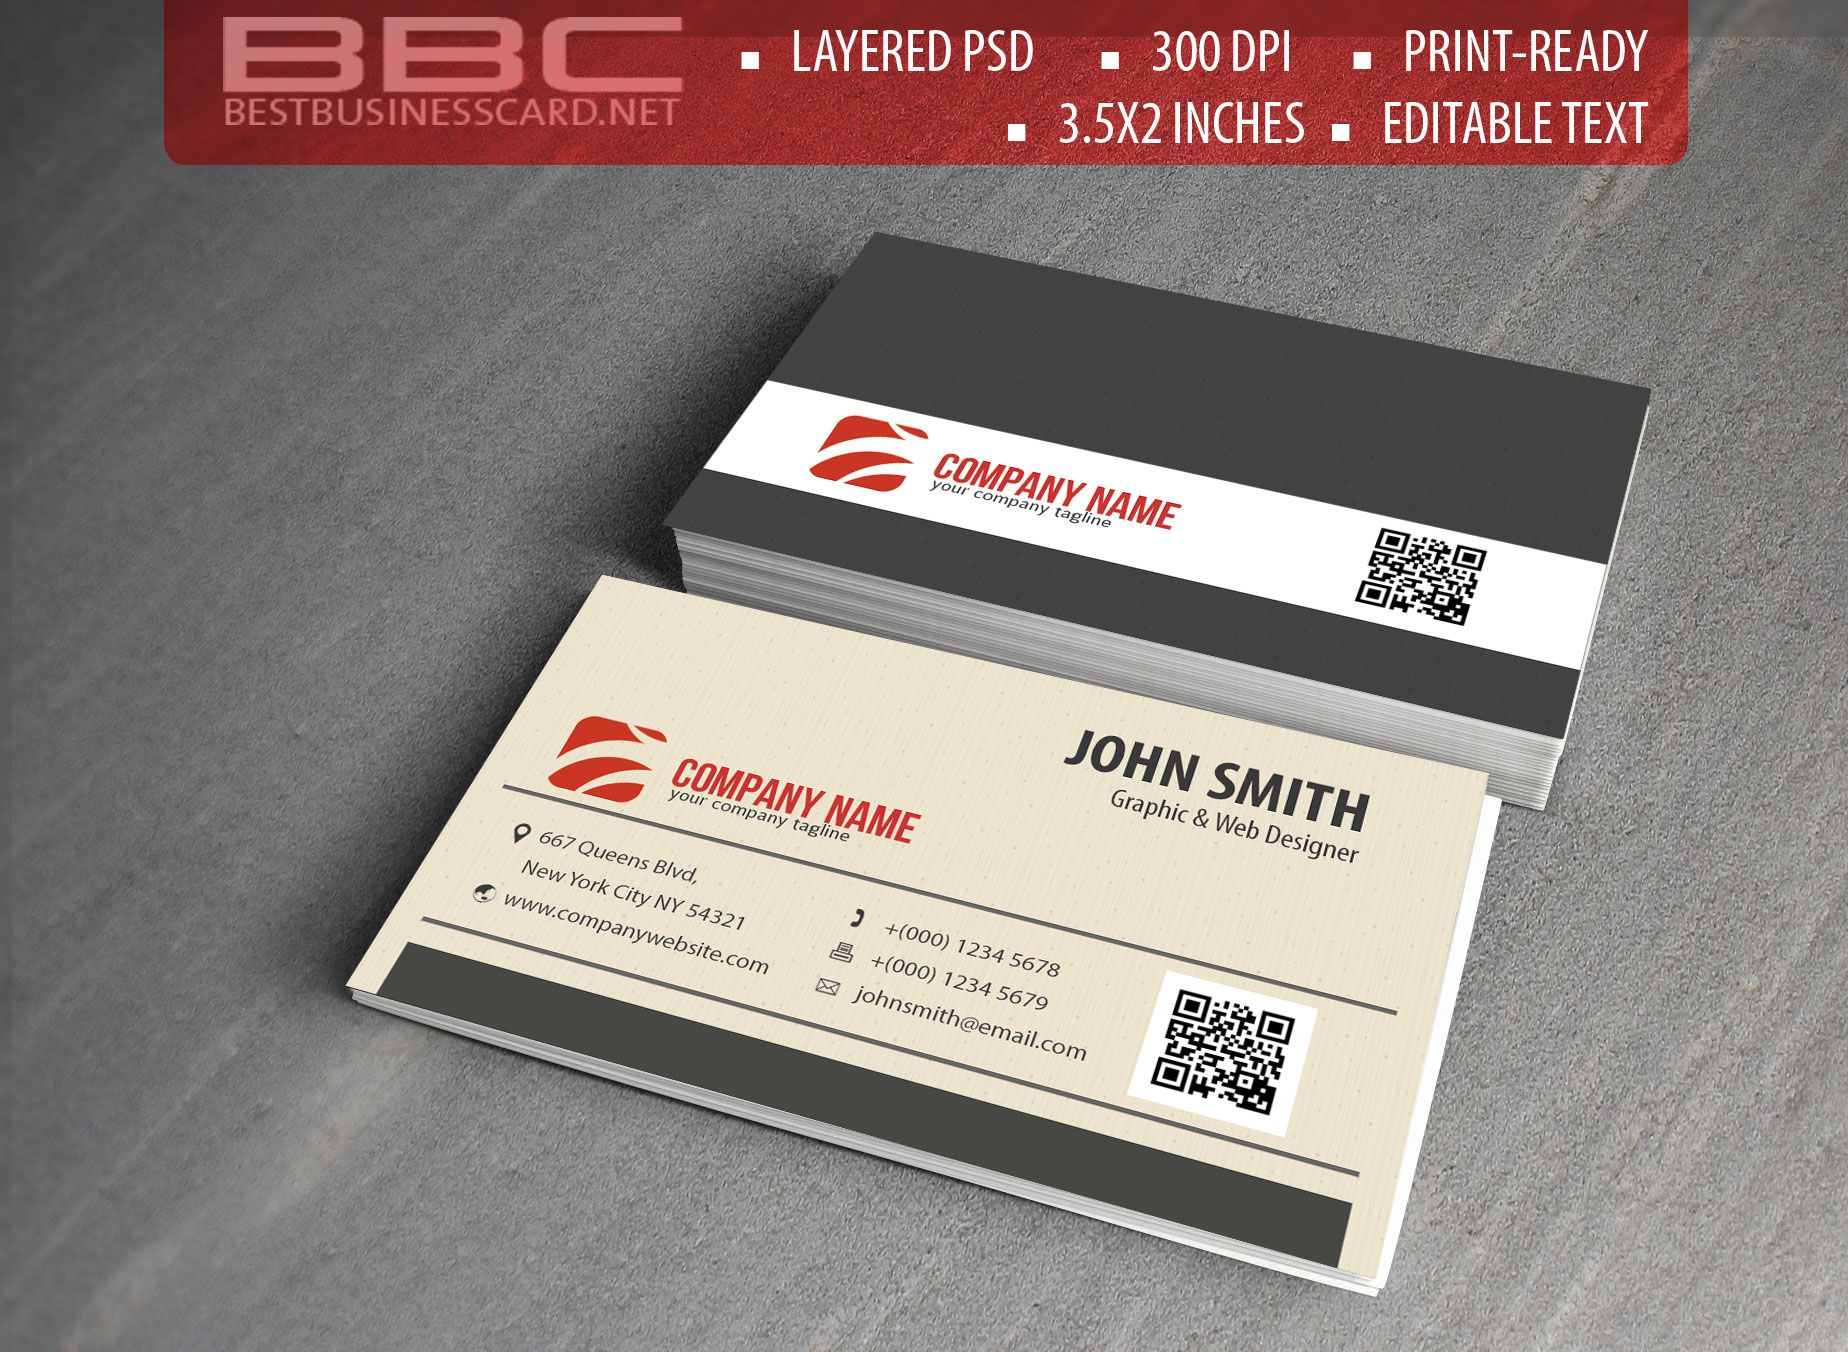 Free Professional Business Card Templates in Pink and Red | Business ...